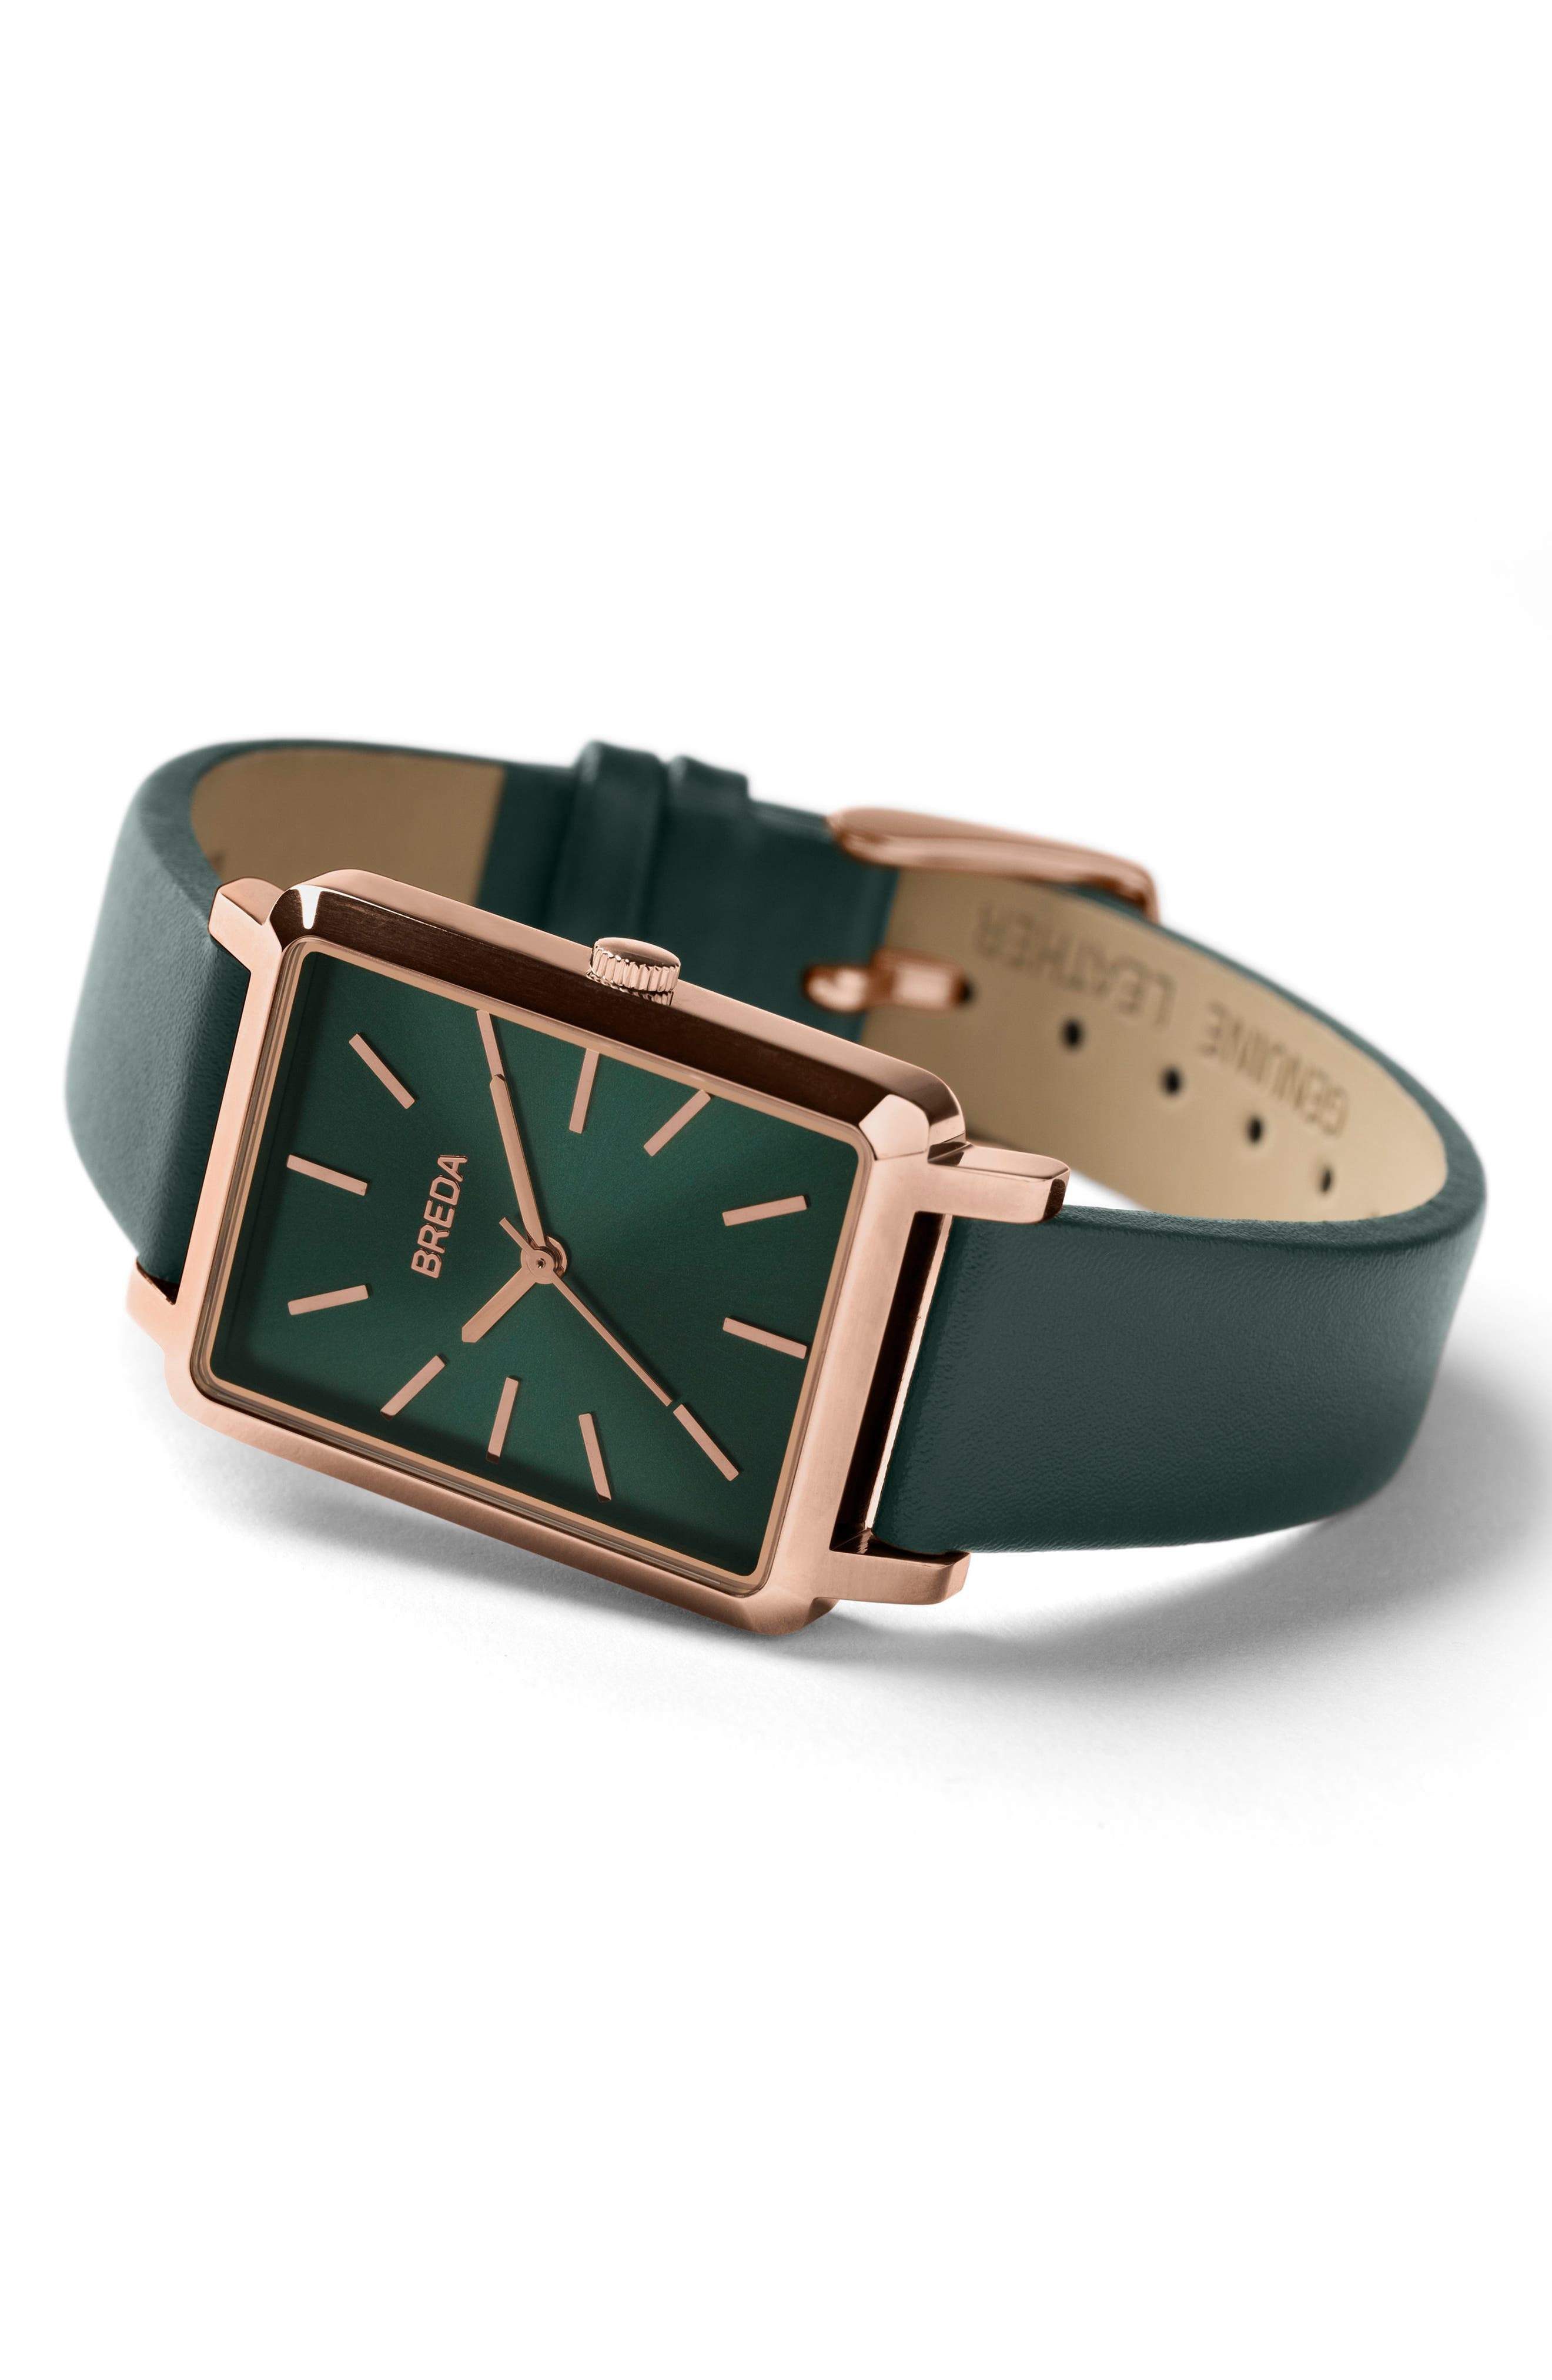 Baer Rectangular Leather Strap Watch, 26mm,                             Alternate thumbnail 3, color,                             Green/ Rose Gold